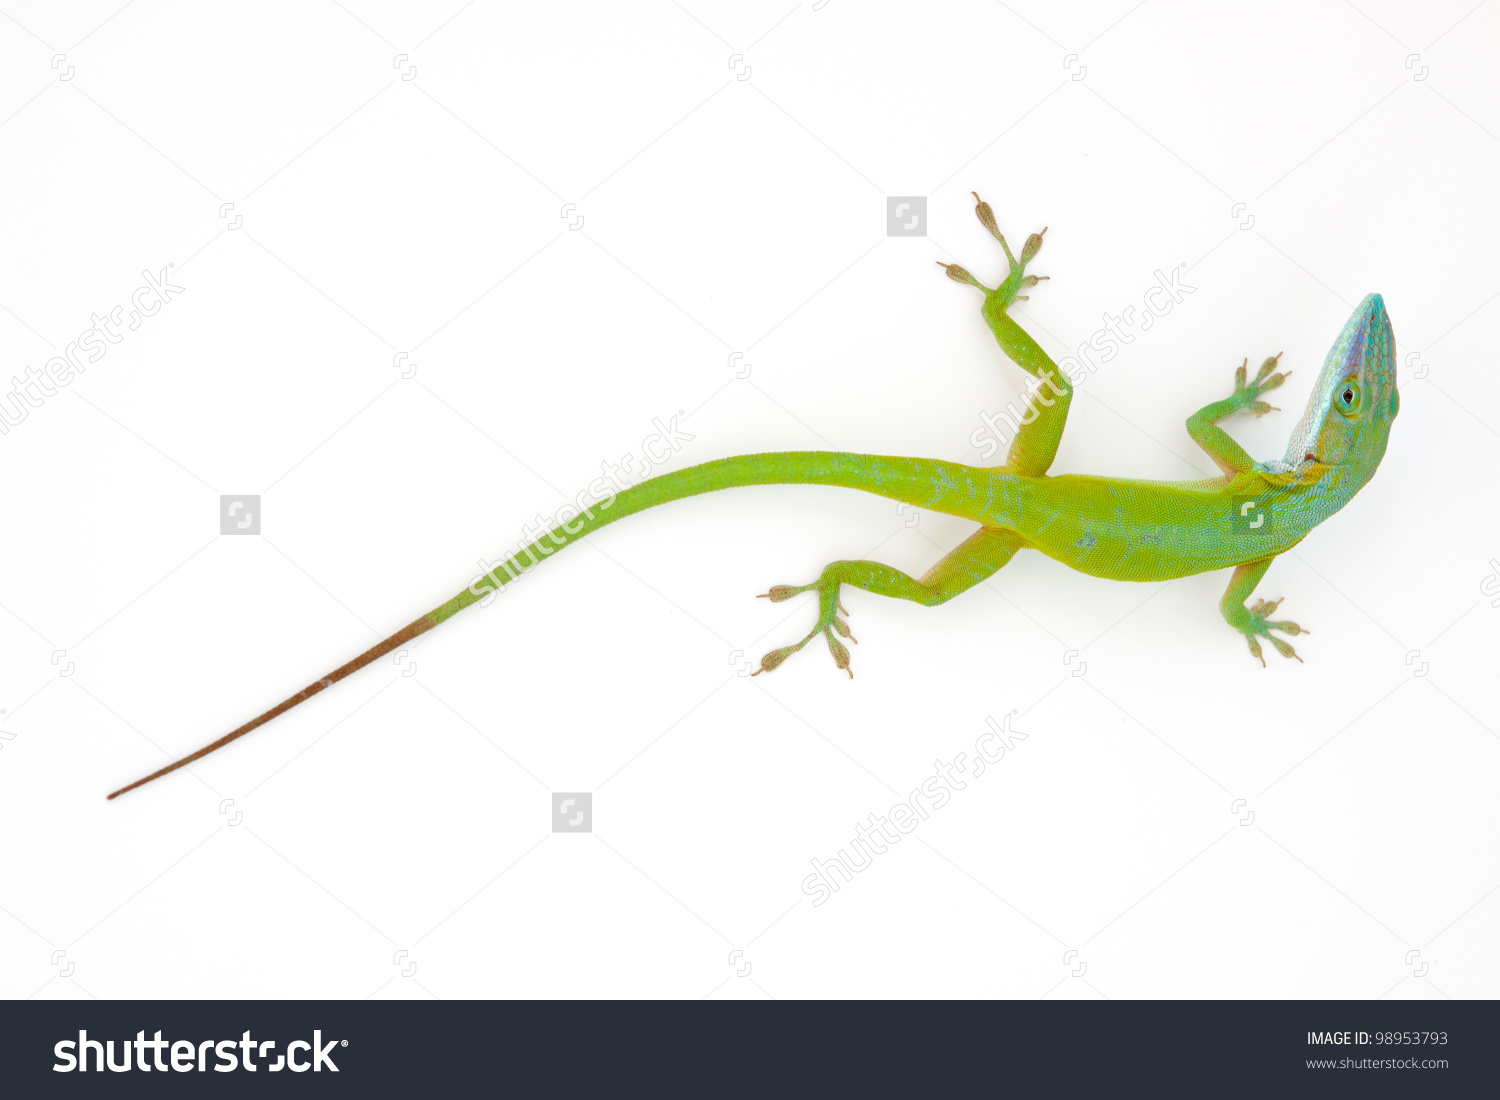 Green Anole clipart #7, Download drawings